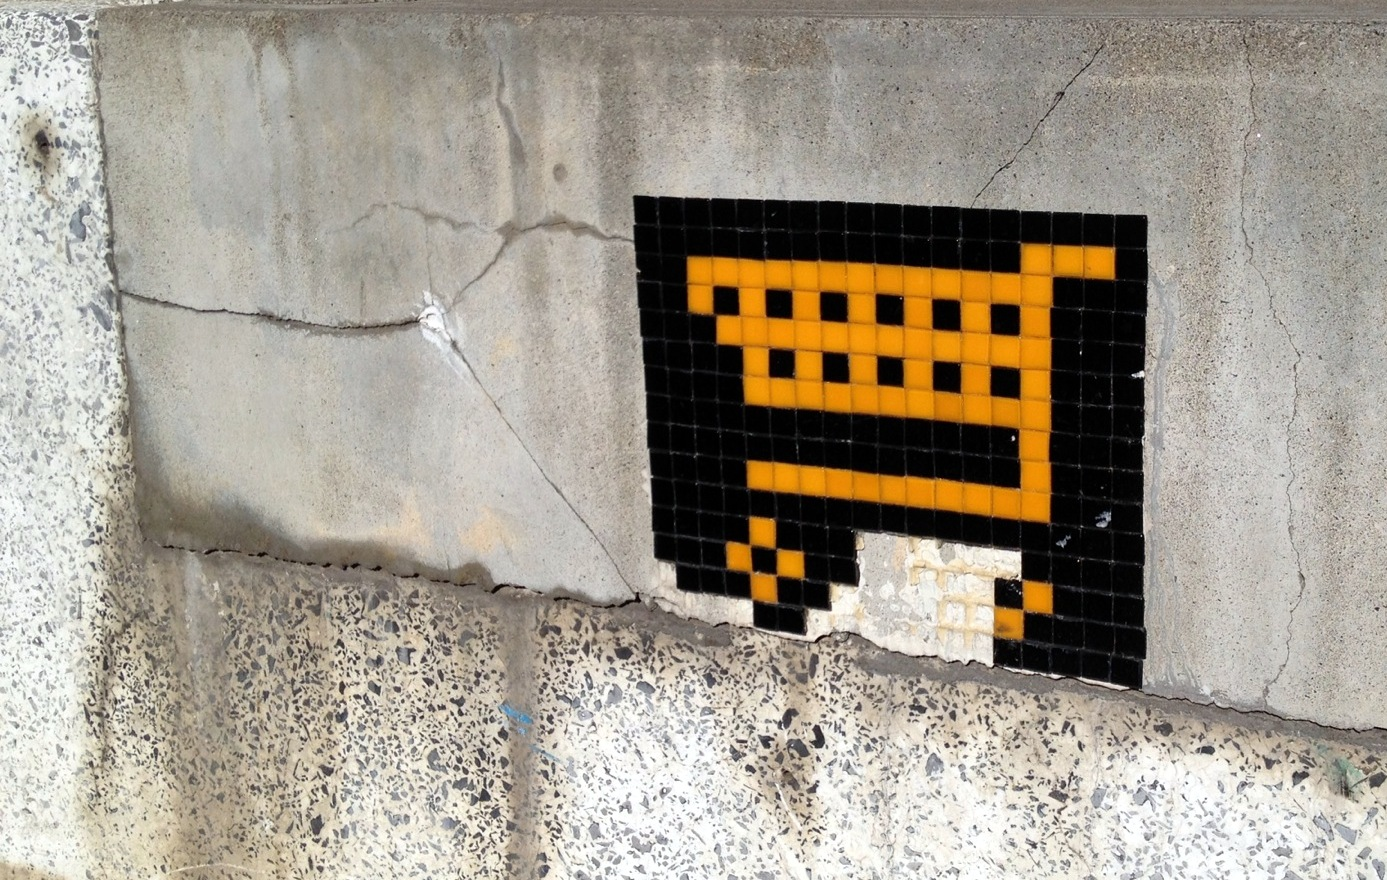 Ly-Tokyo-SpaceInvader-Sinpasarte-3